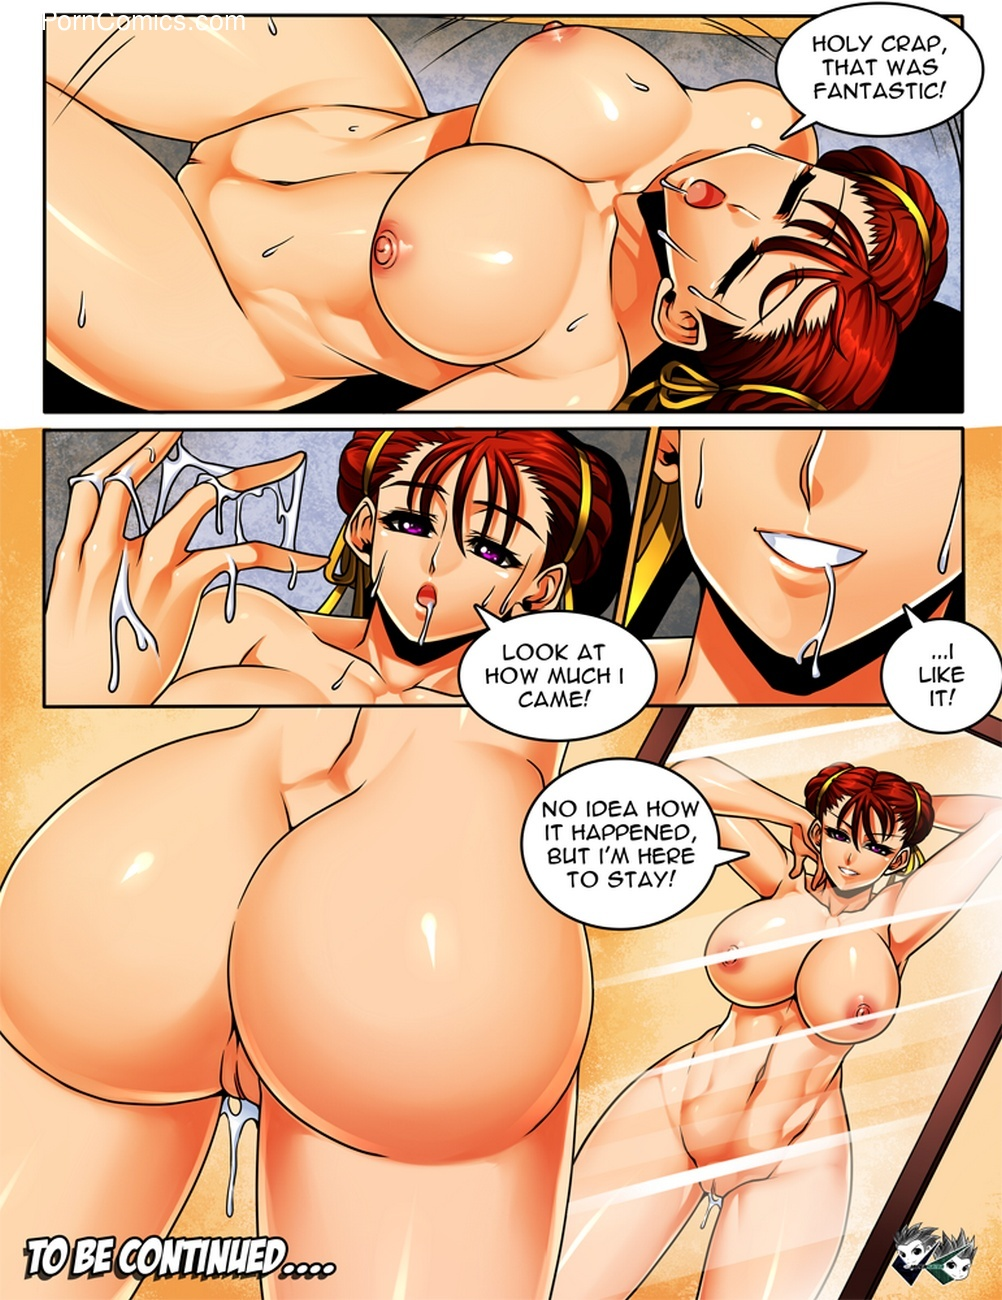 Chun-Li Body Swap Sex Comic